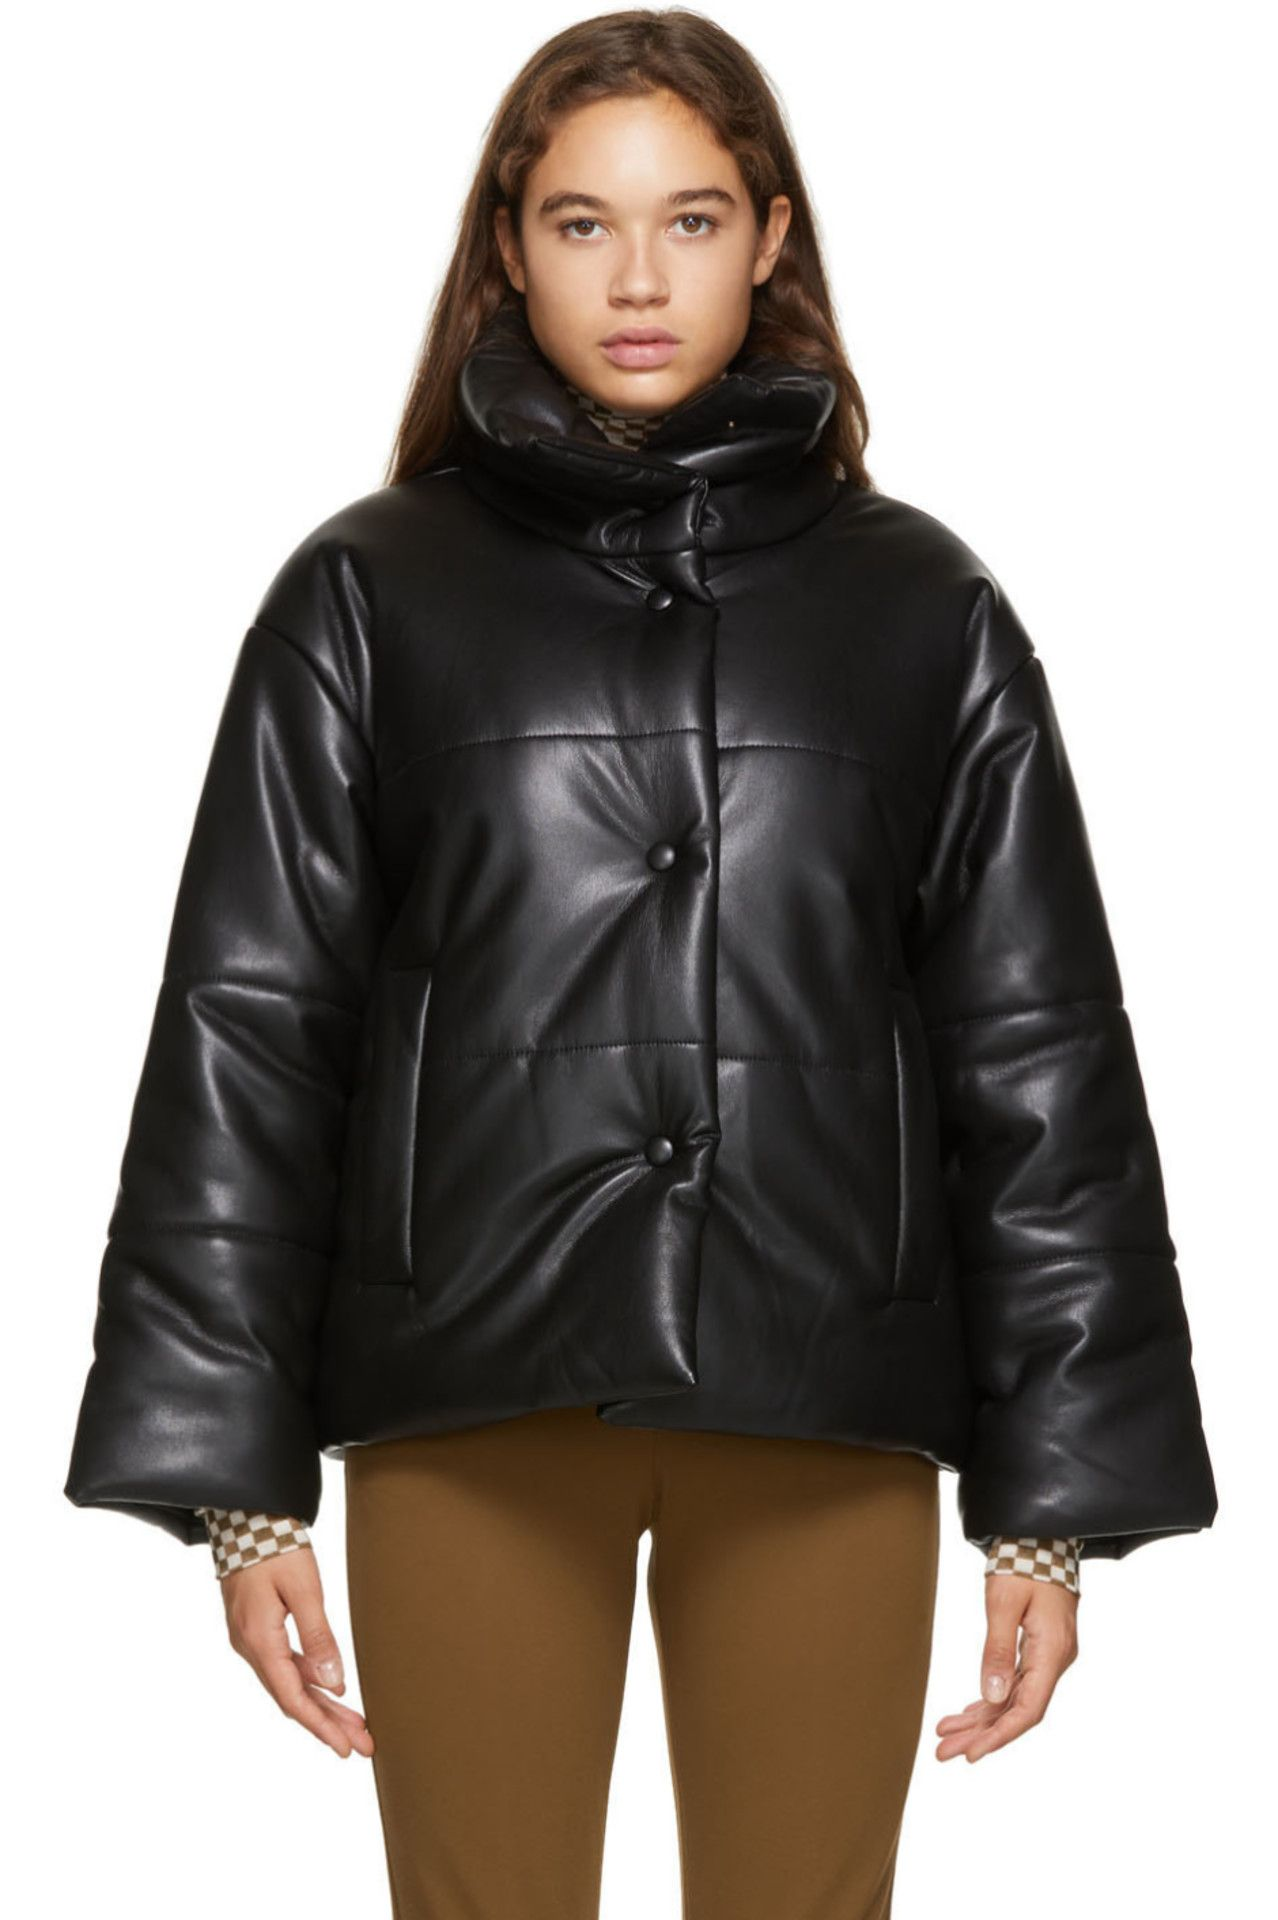 Black Faux Leather Puffer Jacket By Nanushka On Sale Leather Leather Mini City Chic [ 1920 x 1278 Pixel ]